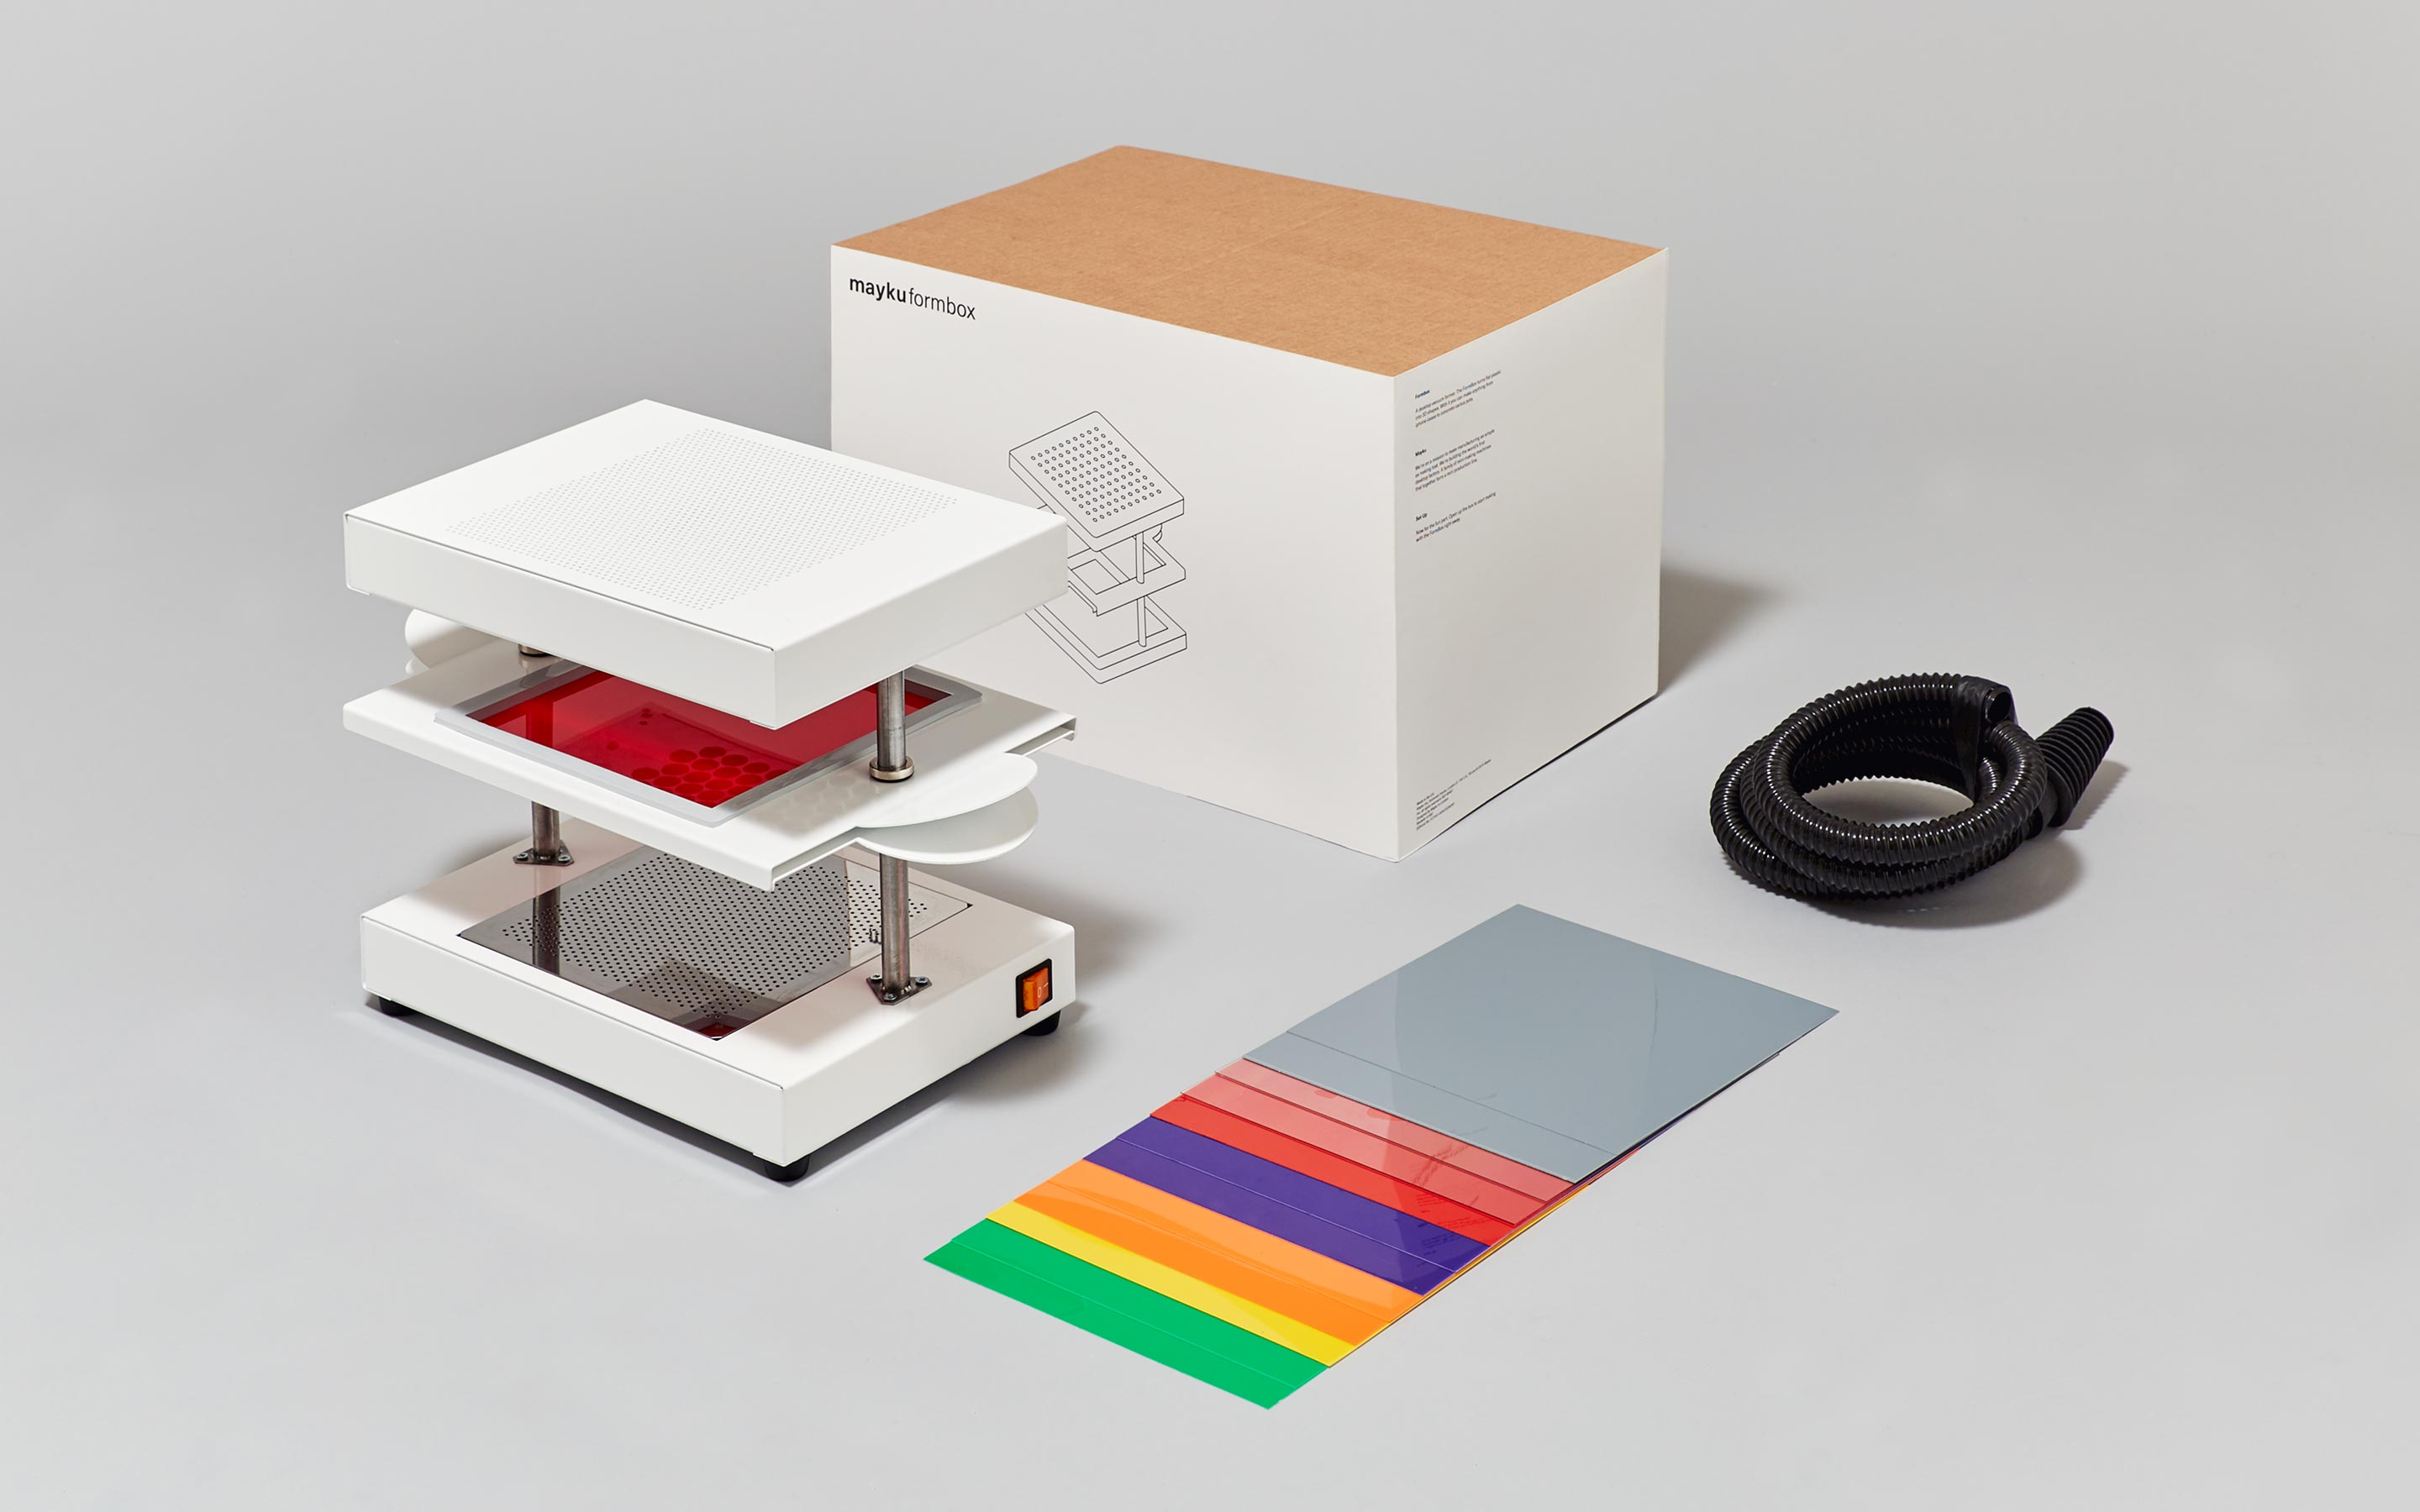 Design Your Own Kit Home Online The 349 Formbox Brings All In One Vacuum Forming To Your